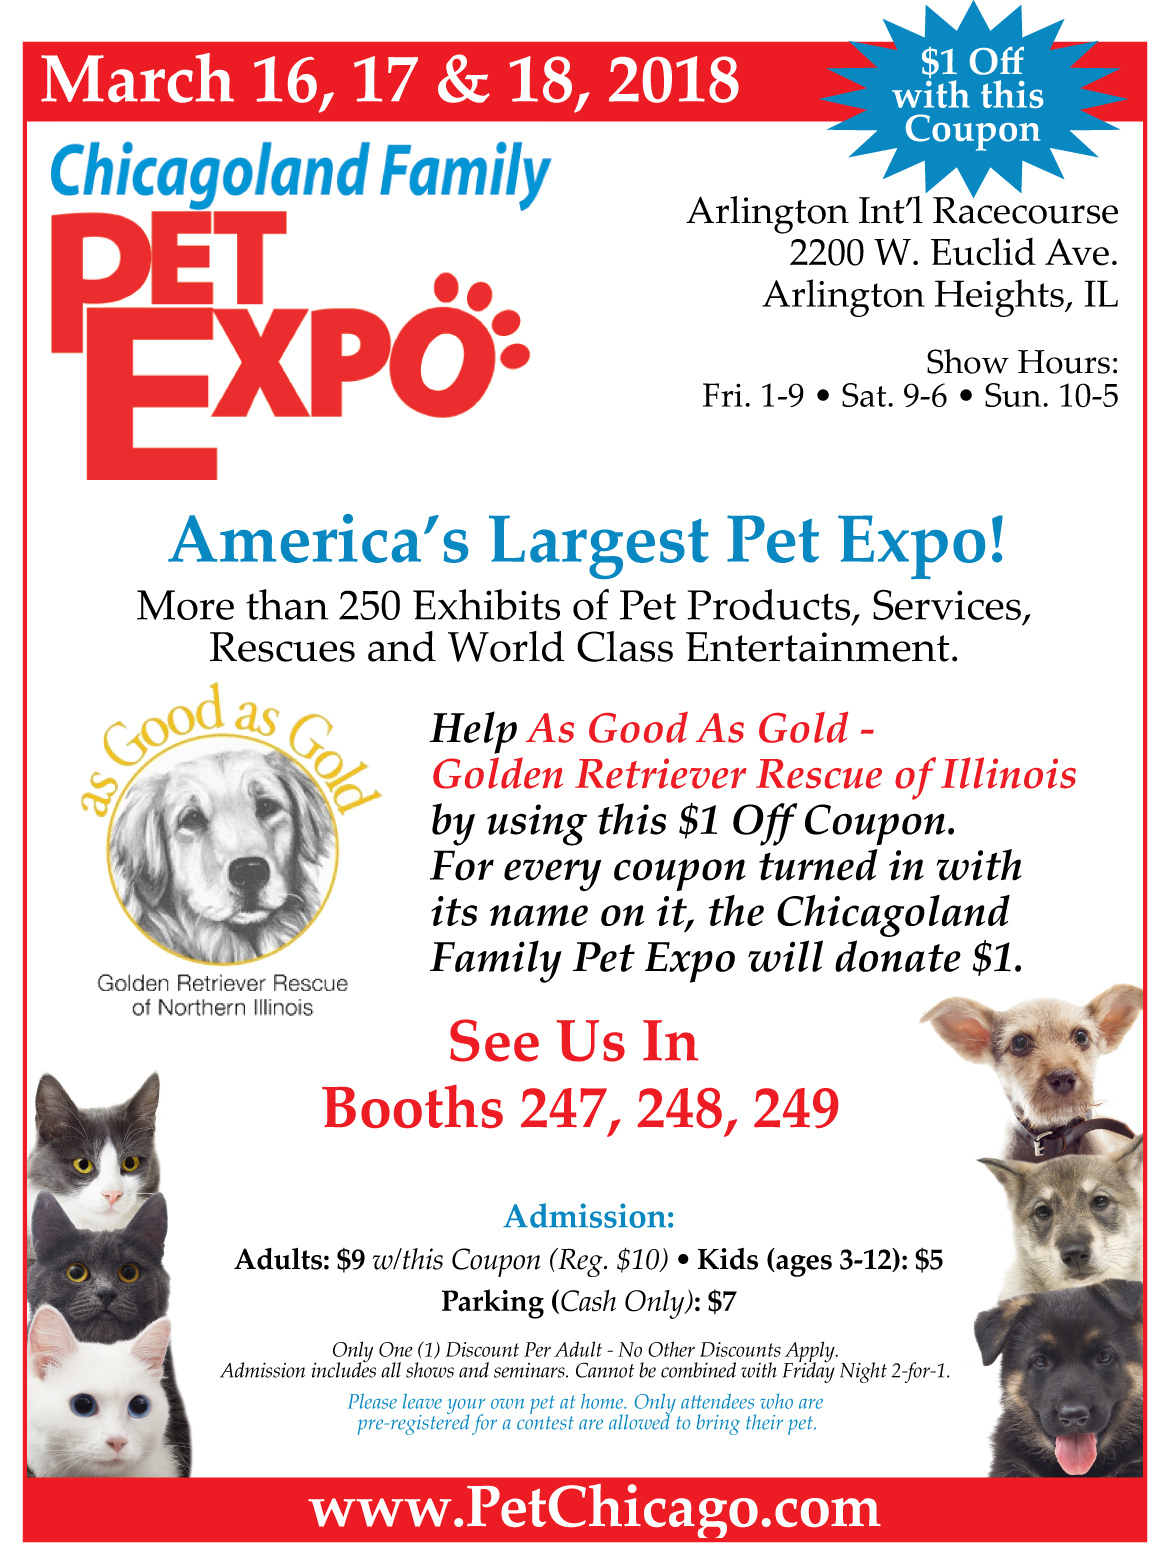 Discount Coupon for Chicagoland Family Pet Expo 2018